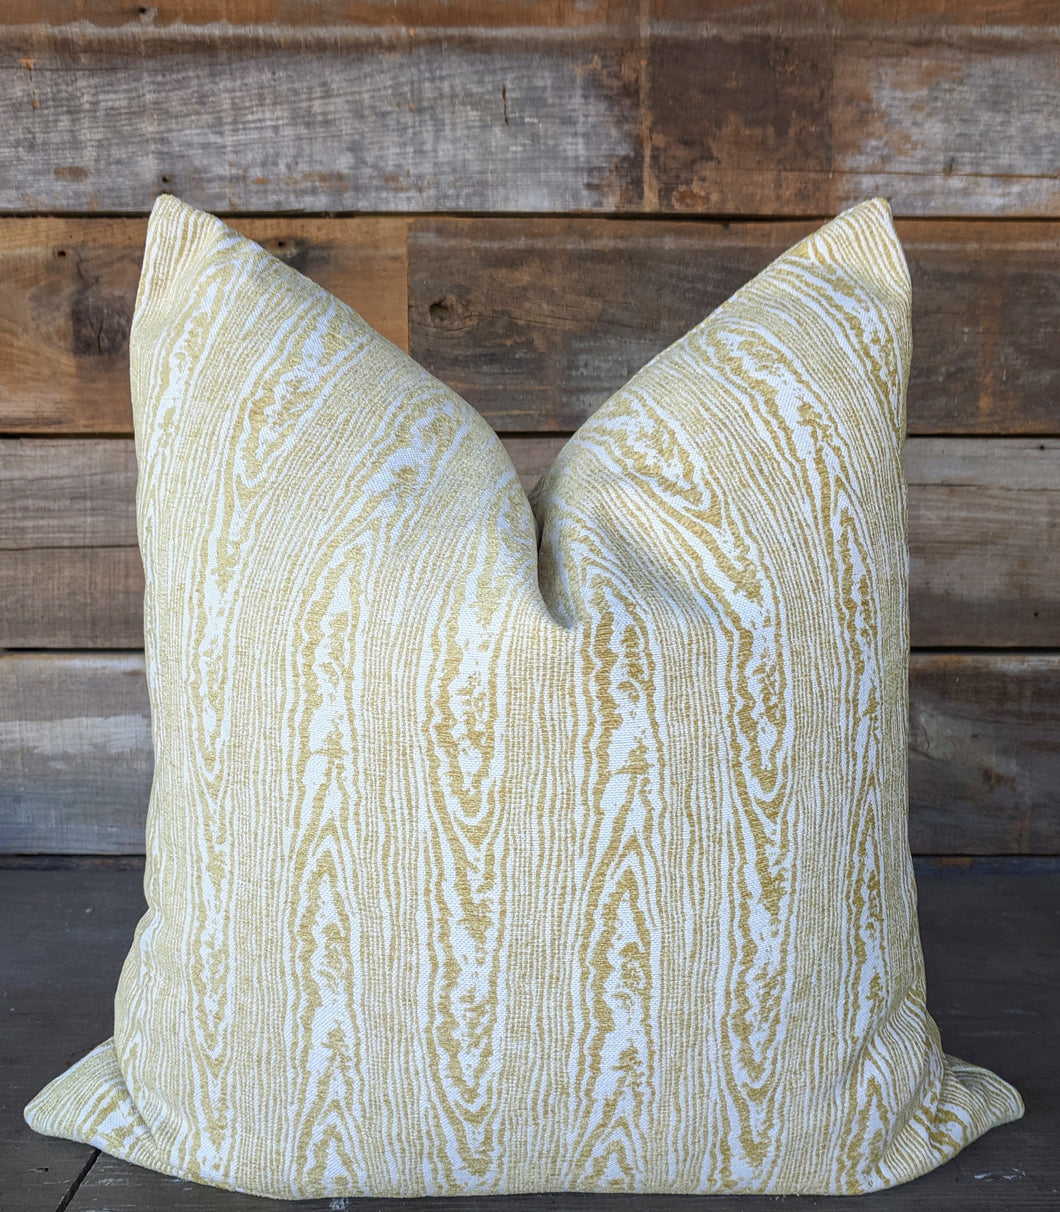 citron velvet // duralee // tobi fairley by duralee pillow covers // rivers fabric // yellow pillows // faux bois